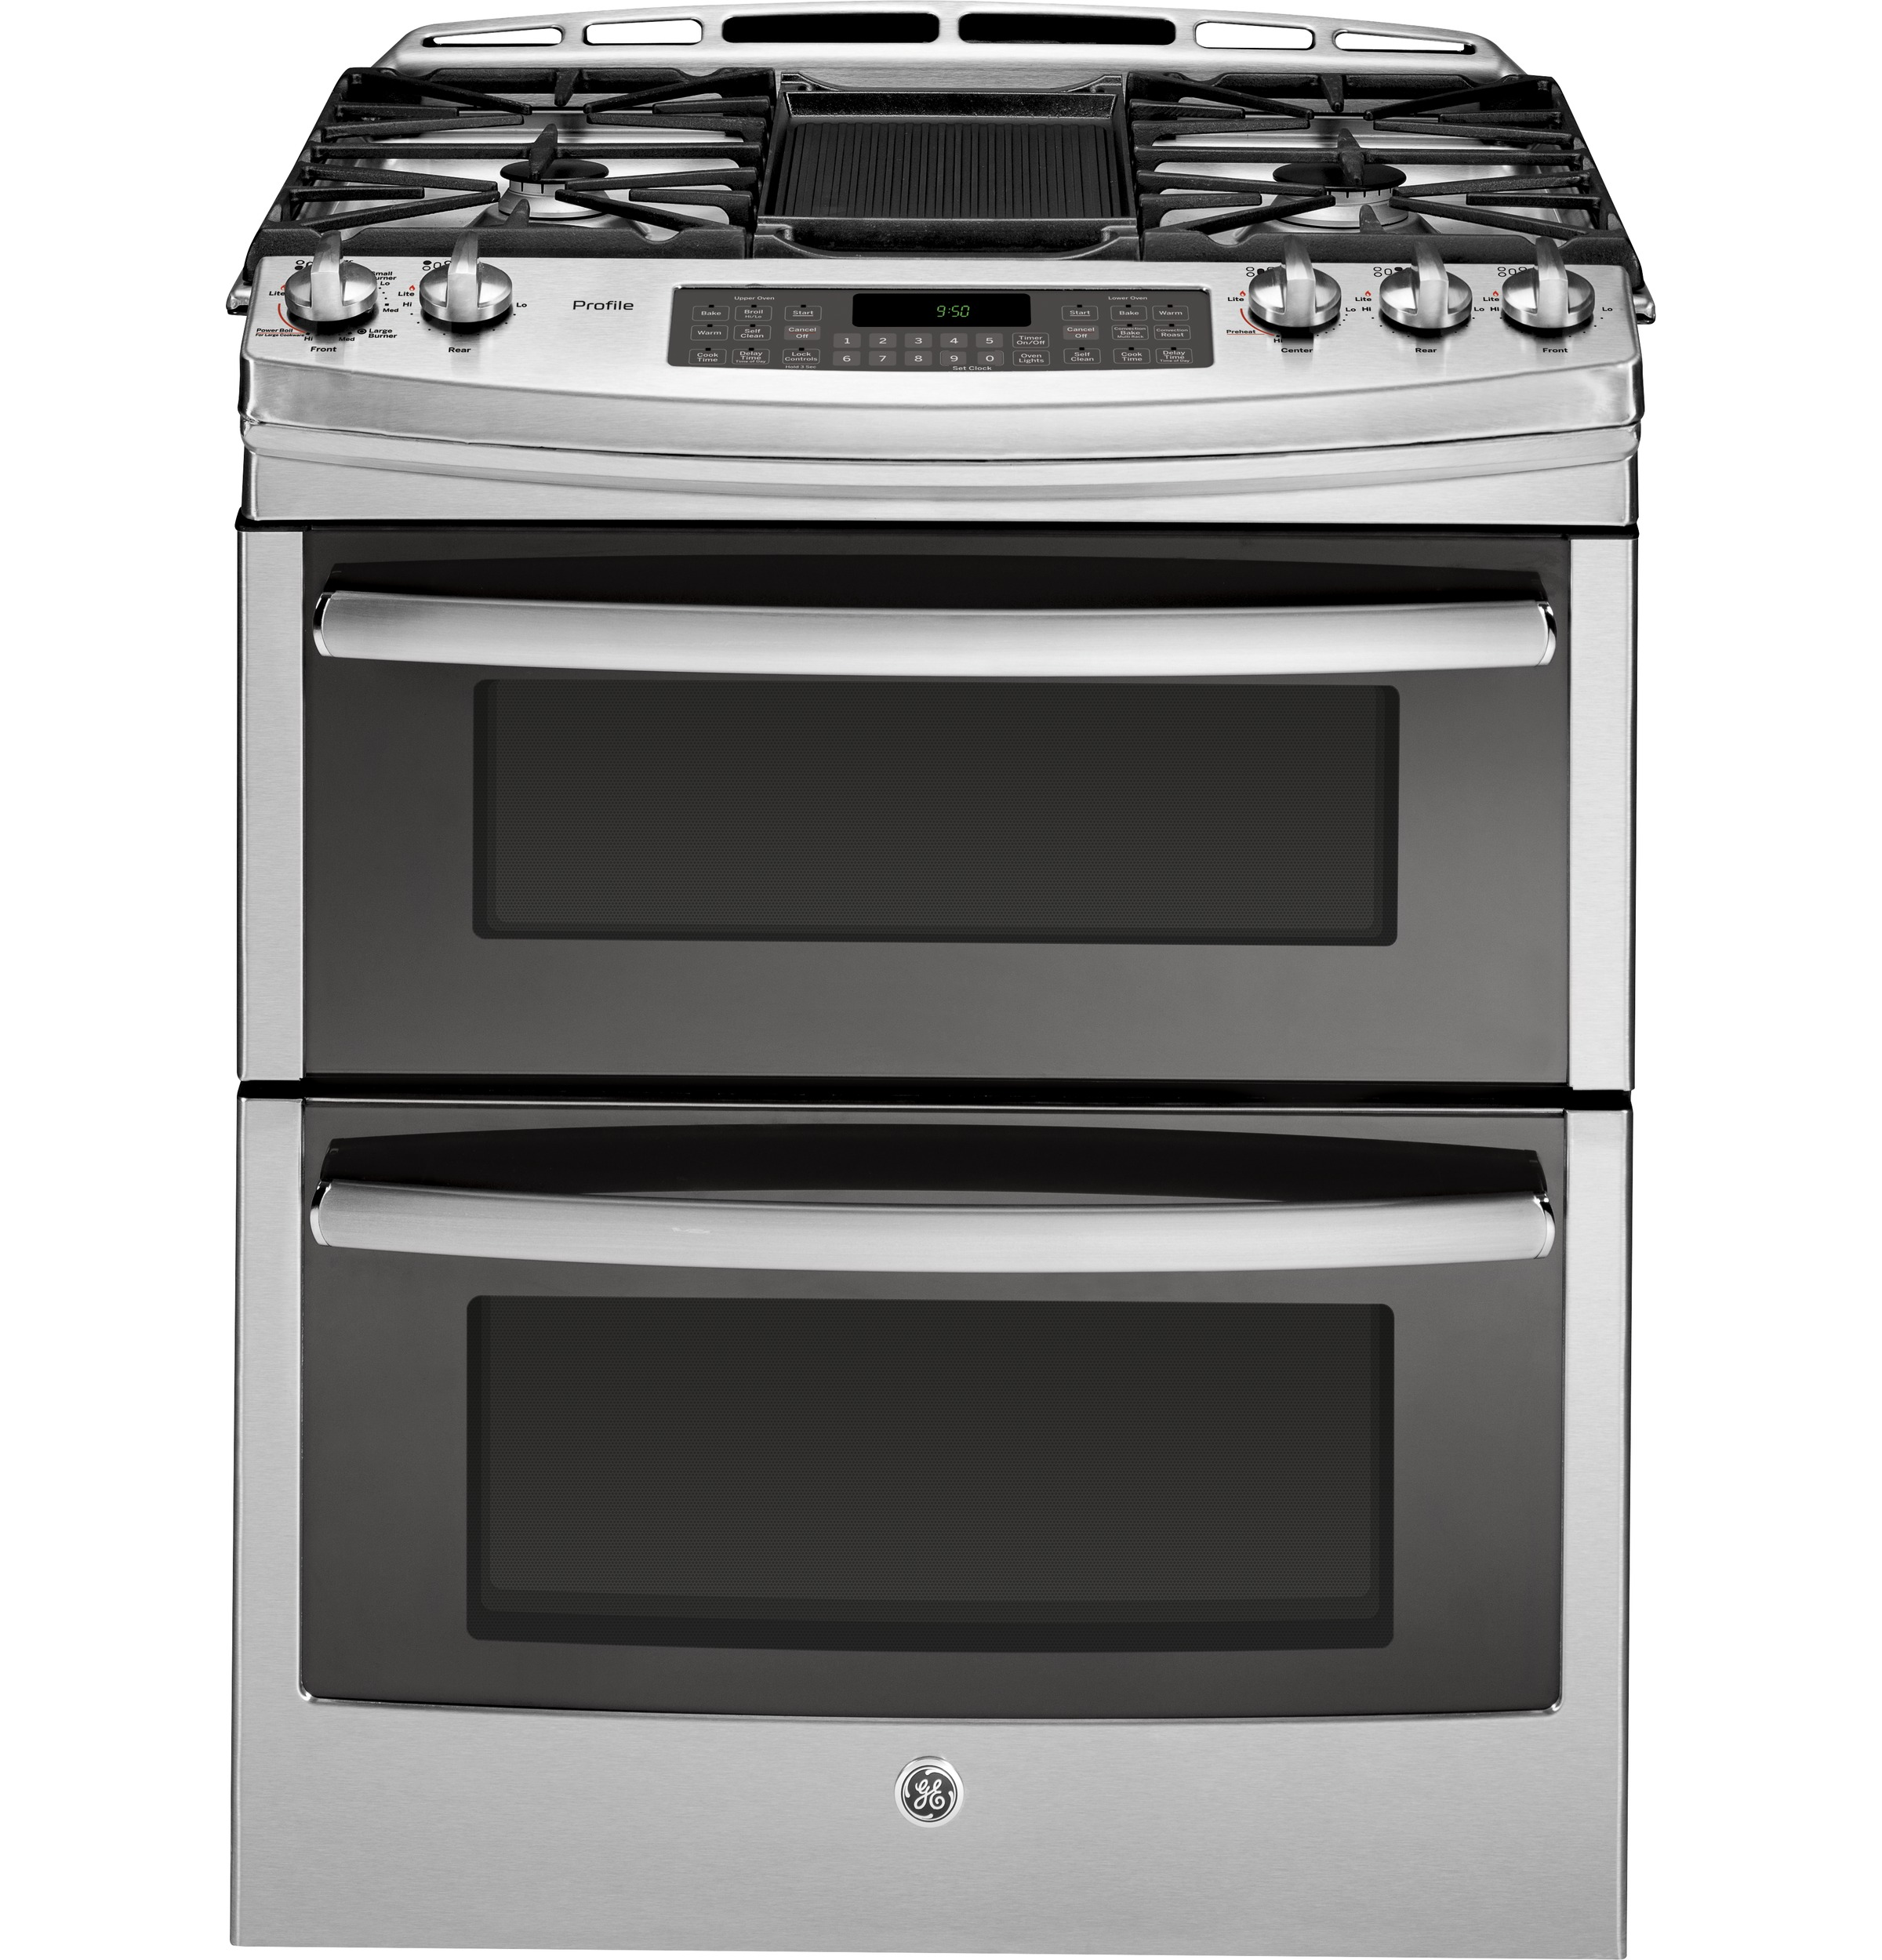 Ge Profile Series 30 Slide In Front Control Double Oven Gas Range Baking Wiring Diagram Product Image